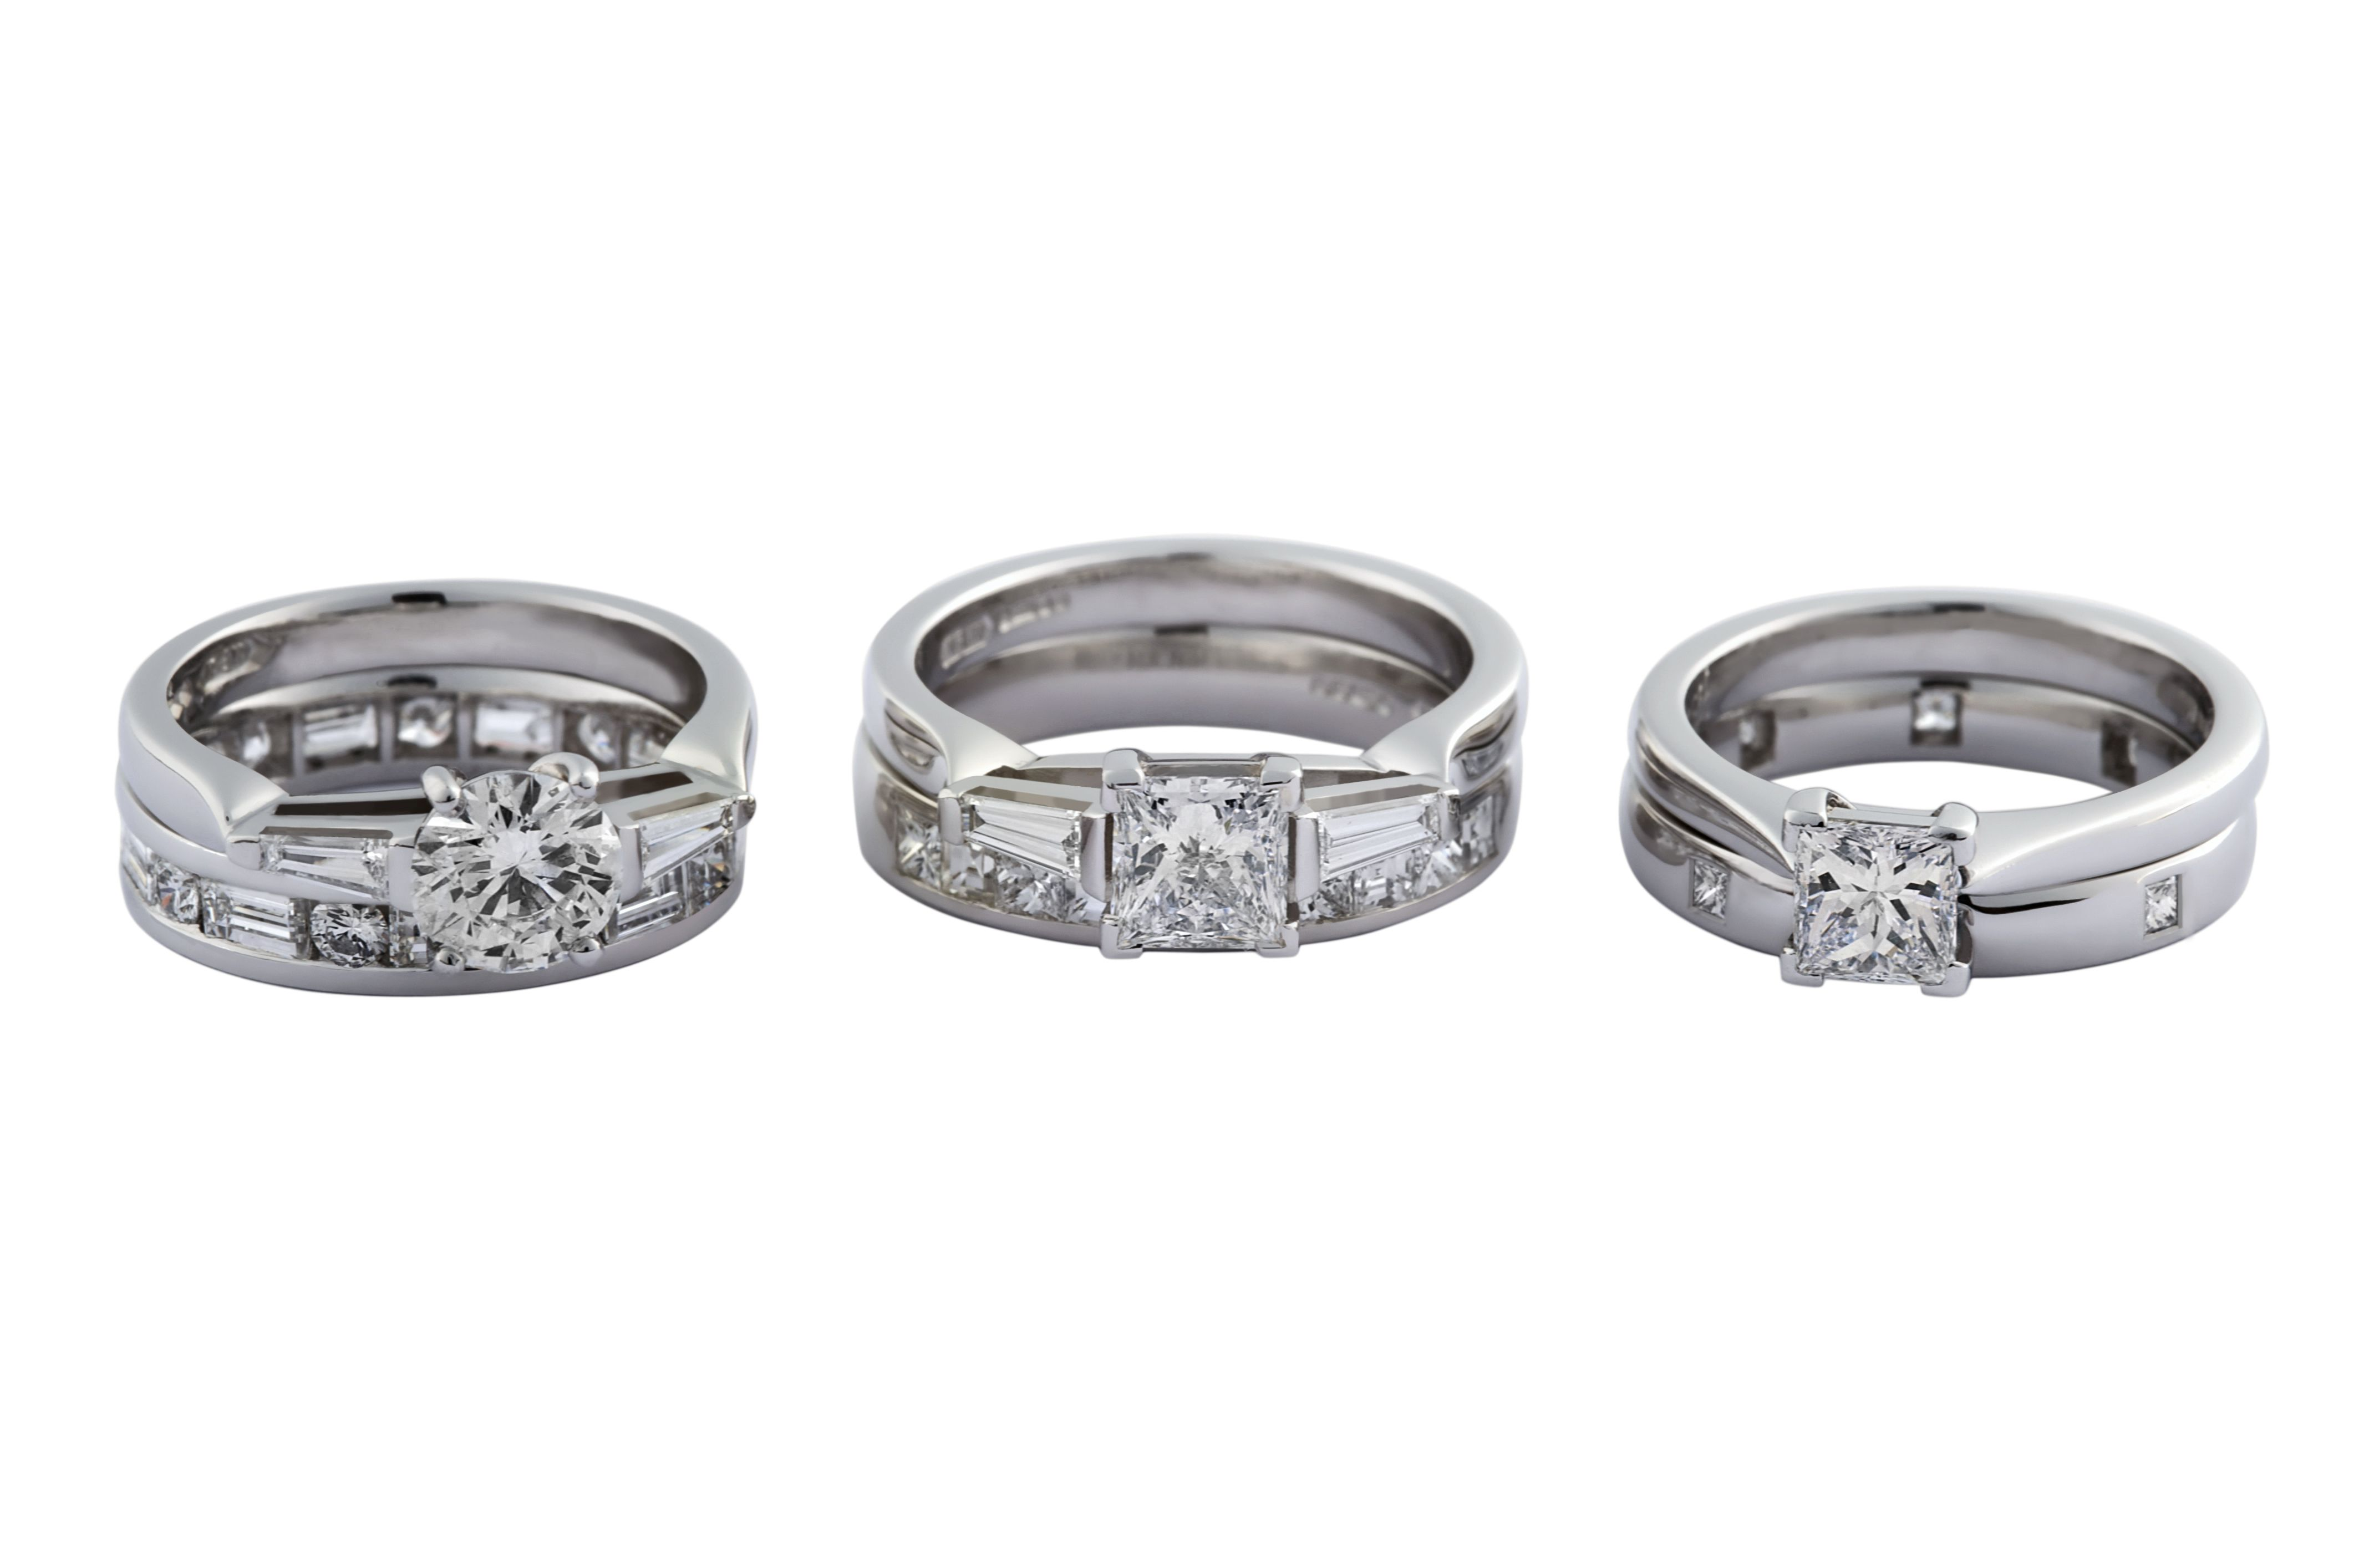 Handmade platinum engagement rings made to sit perfectly next to diamond set wedding bands.